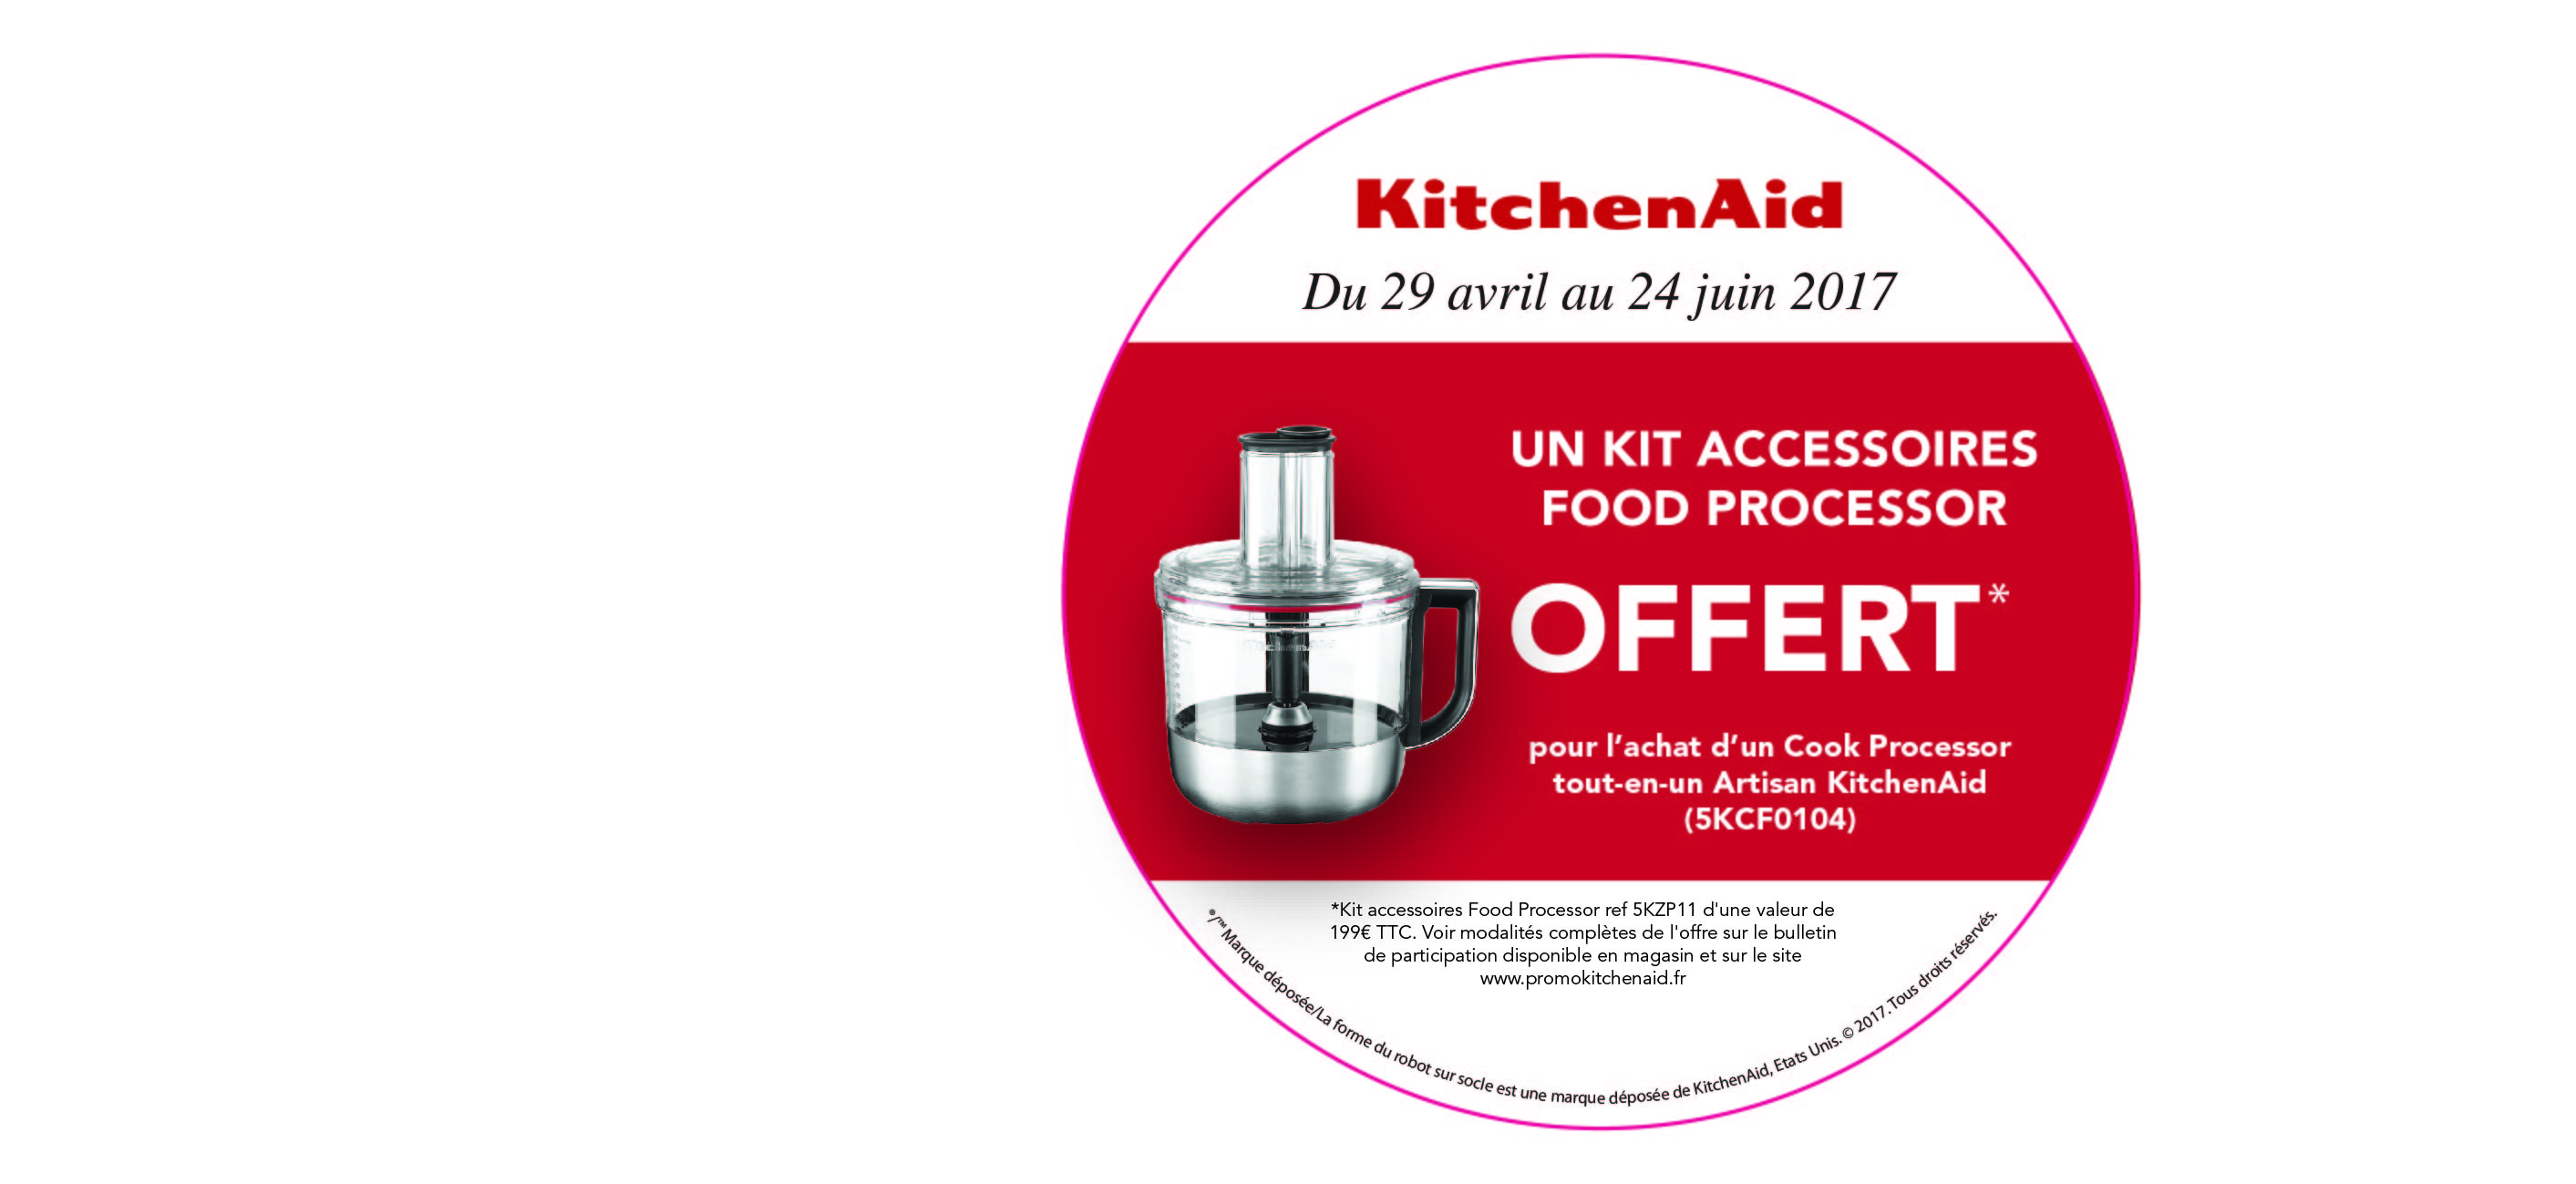 Promotions kitchenaid mai 2017 recettes pour le cook processor de kitchenaid - Recette kitchenaid cook processor ...